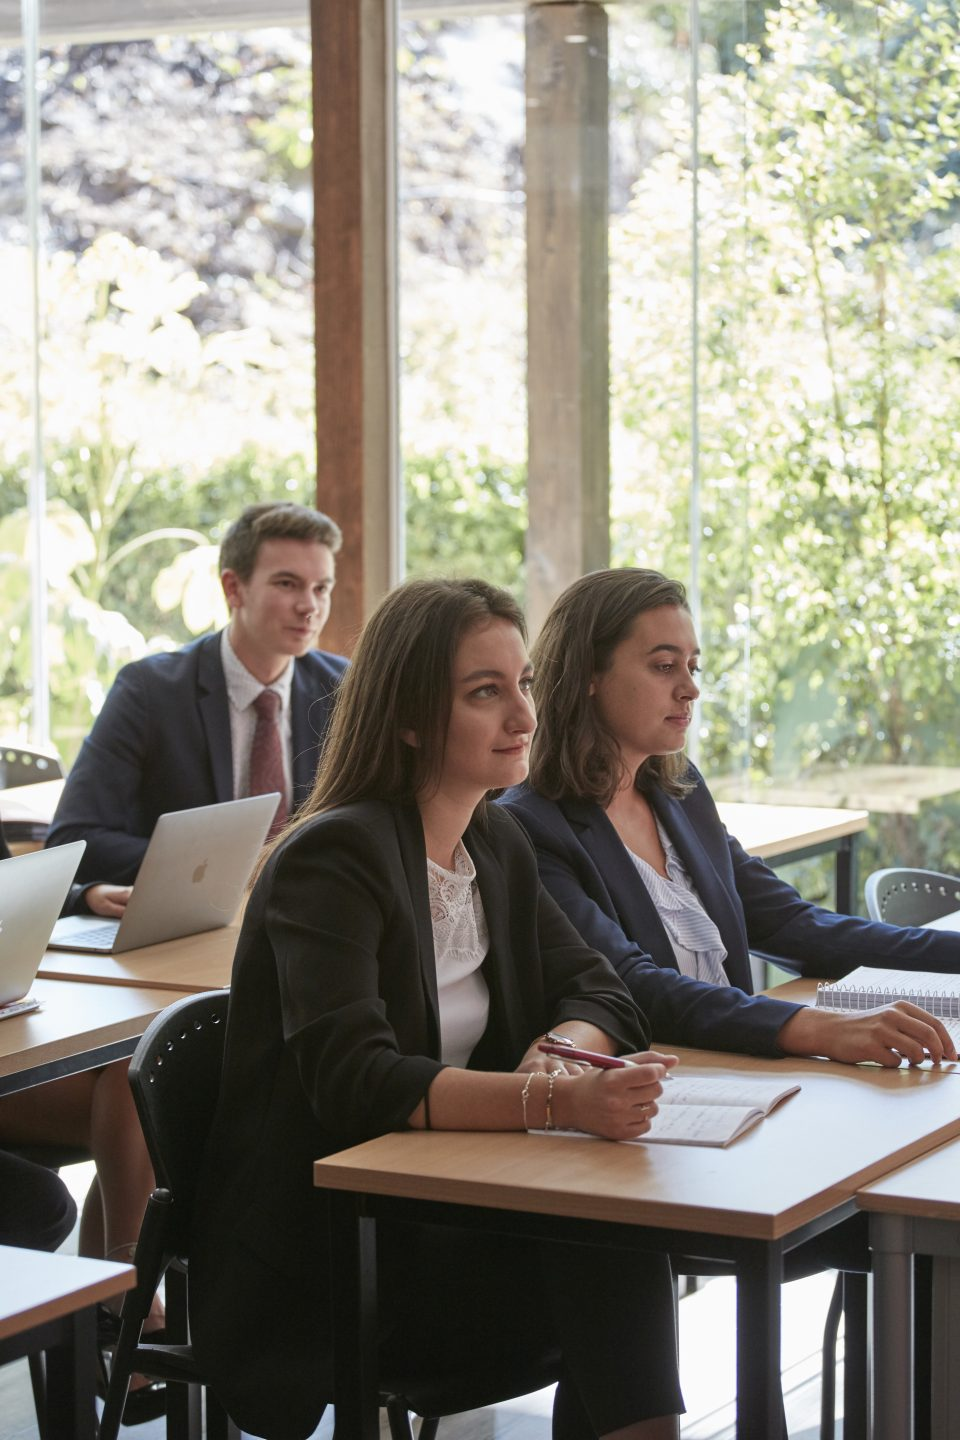 Les Roches Marbella: training the future leaders of Luxury Hospitality and Tourism 2